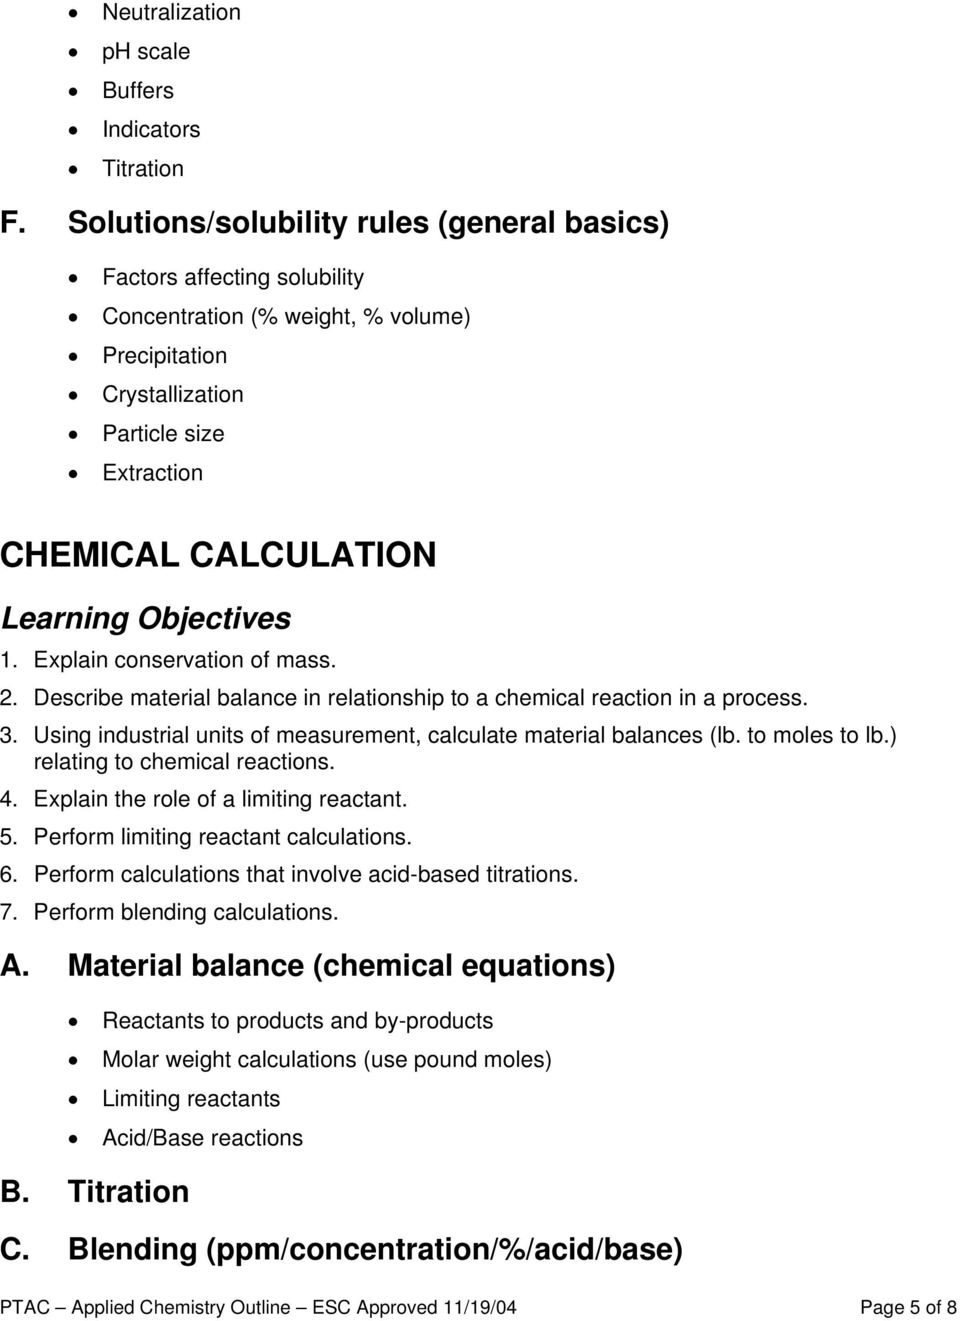 Explain conservation of mass. 2. Describe material balance in relationship to a chemical reaction in a process. 3. Using industrial units of measurement, relating to chemical reactions. 4.